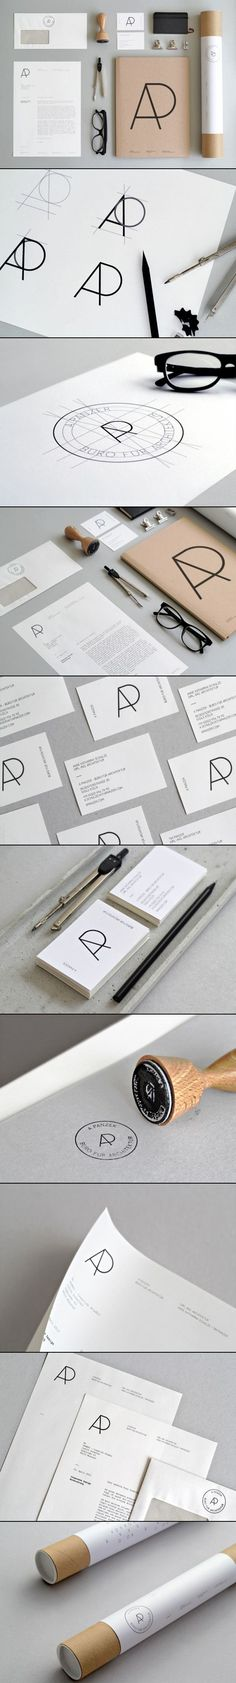 Creative Logo, Ap, Identity, and Branding image ideas & inspiration on Designspiration Corporate Design, Brand Identity Design, Graphic Design Typography, Brand Design, Logo Rond, Design Corporativo, Paper Design, Design Ideas, Self Branding